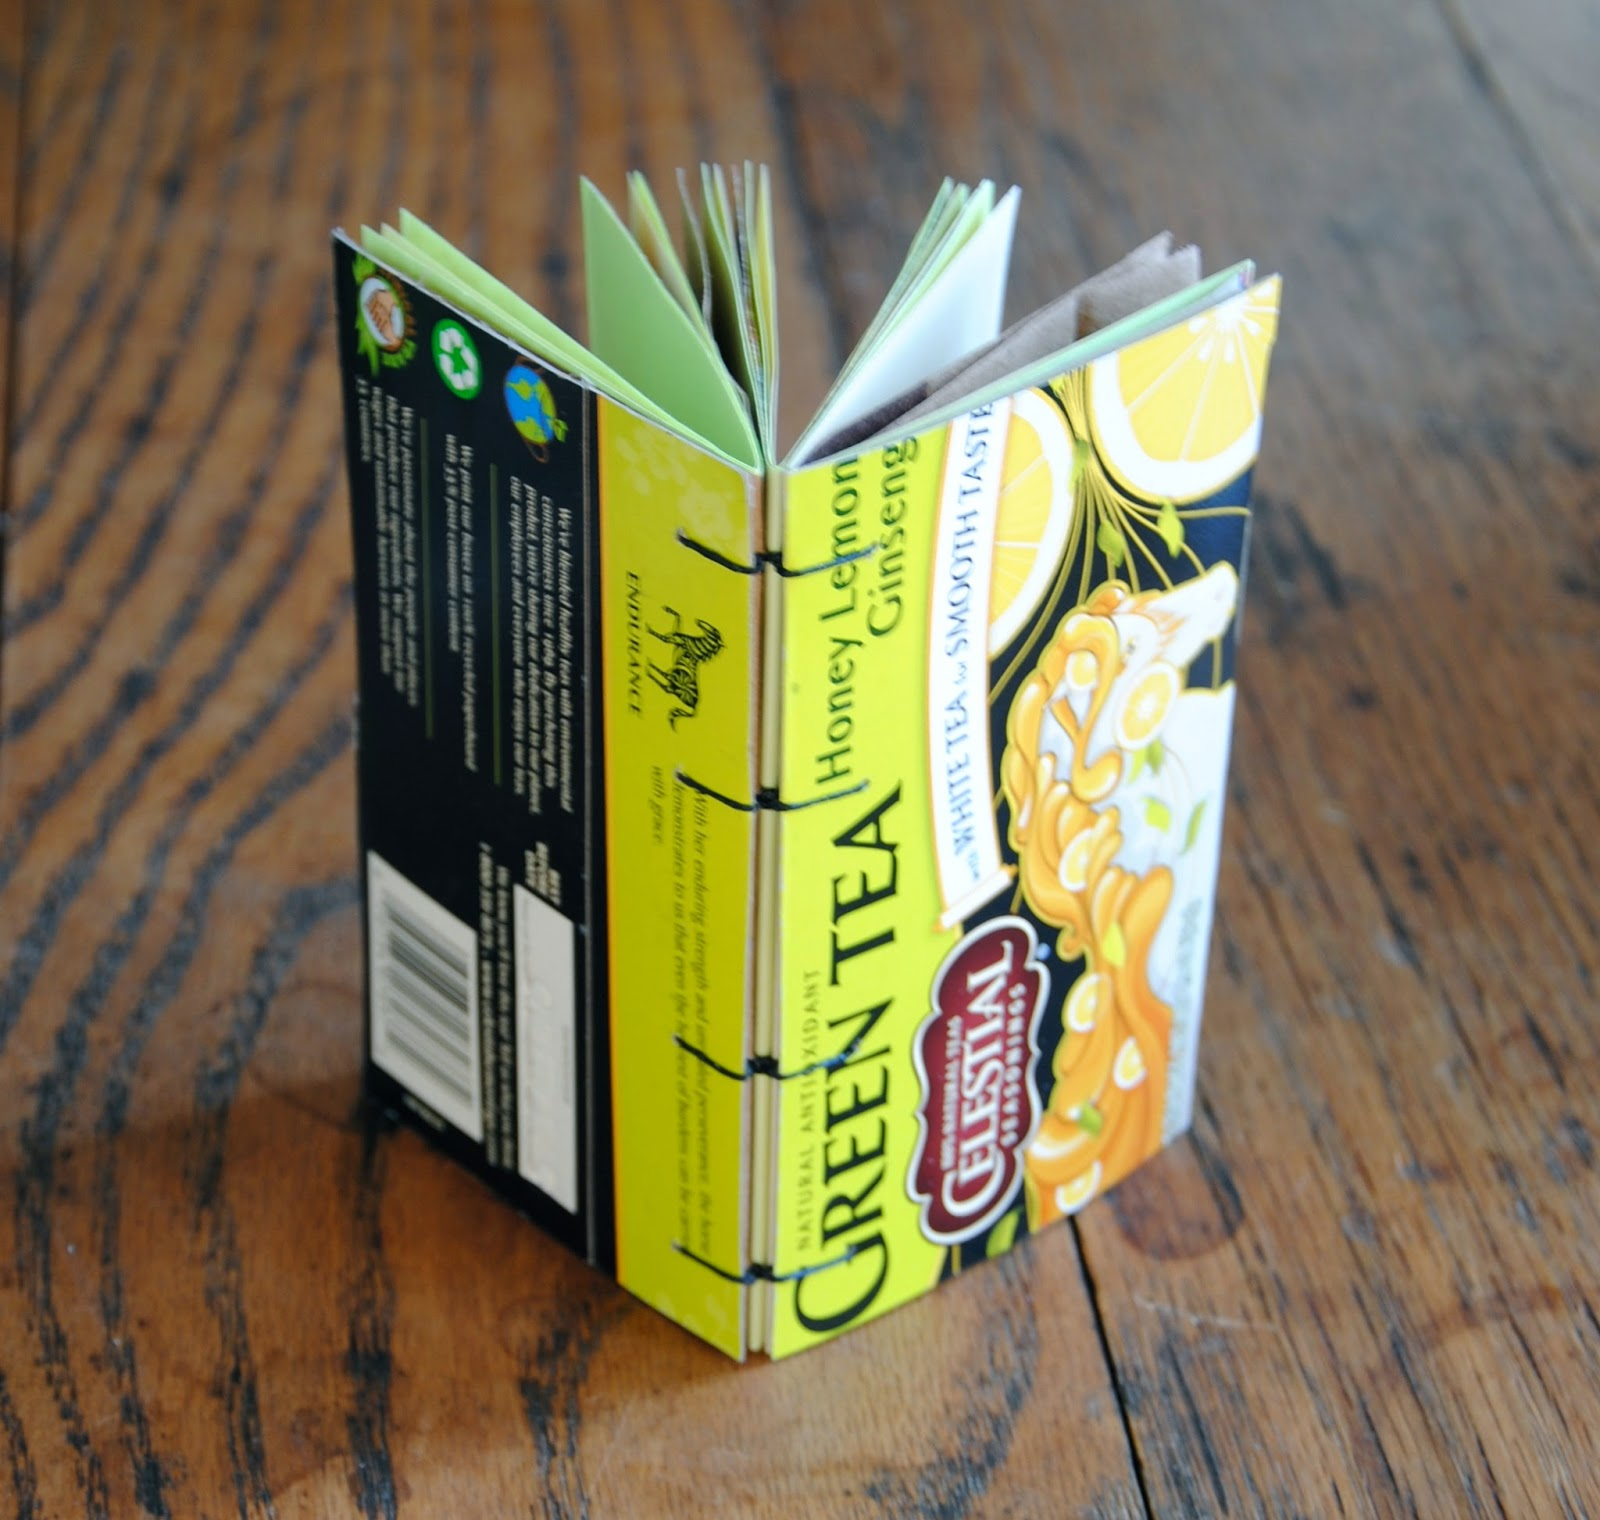 https://www.etsy.com/listing/182912955/honey-lemon-green-tea-recycled-book?ref=listing-shop-header-1